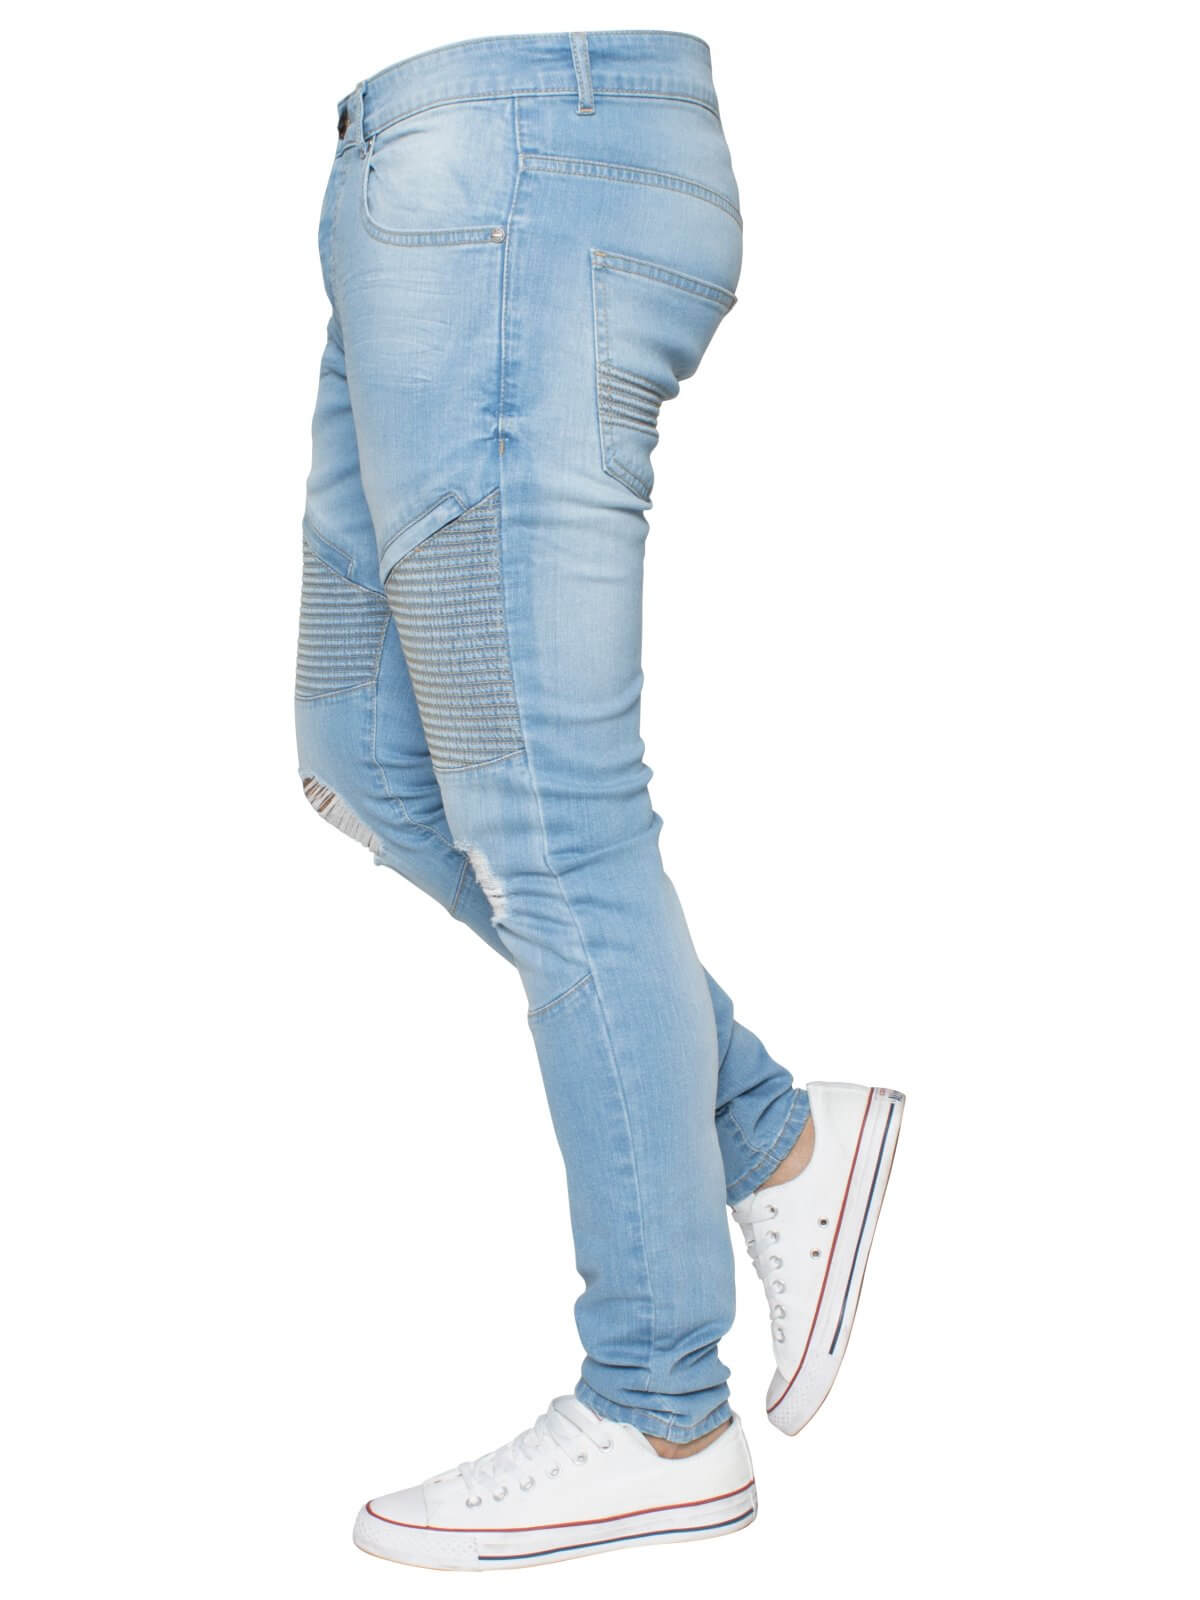 Mens Light Blue Designer Ripped Biker Jeans Super Skinny Stretch Denim | Enzo Designer Menswear